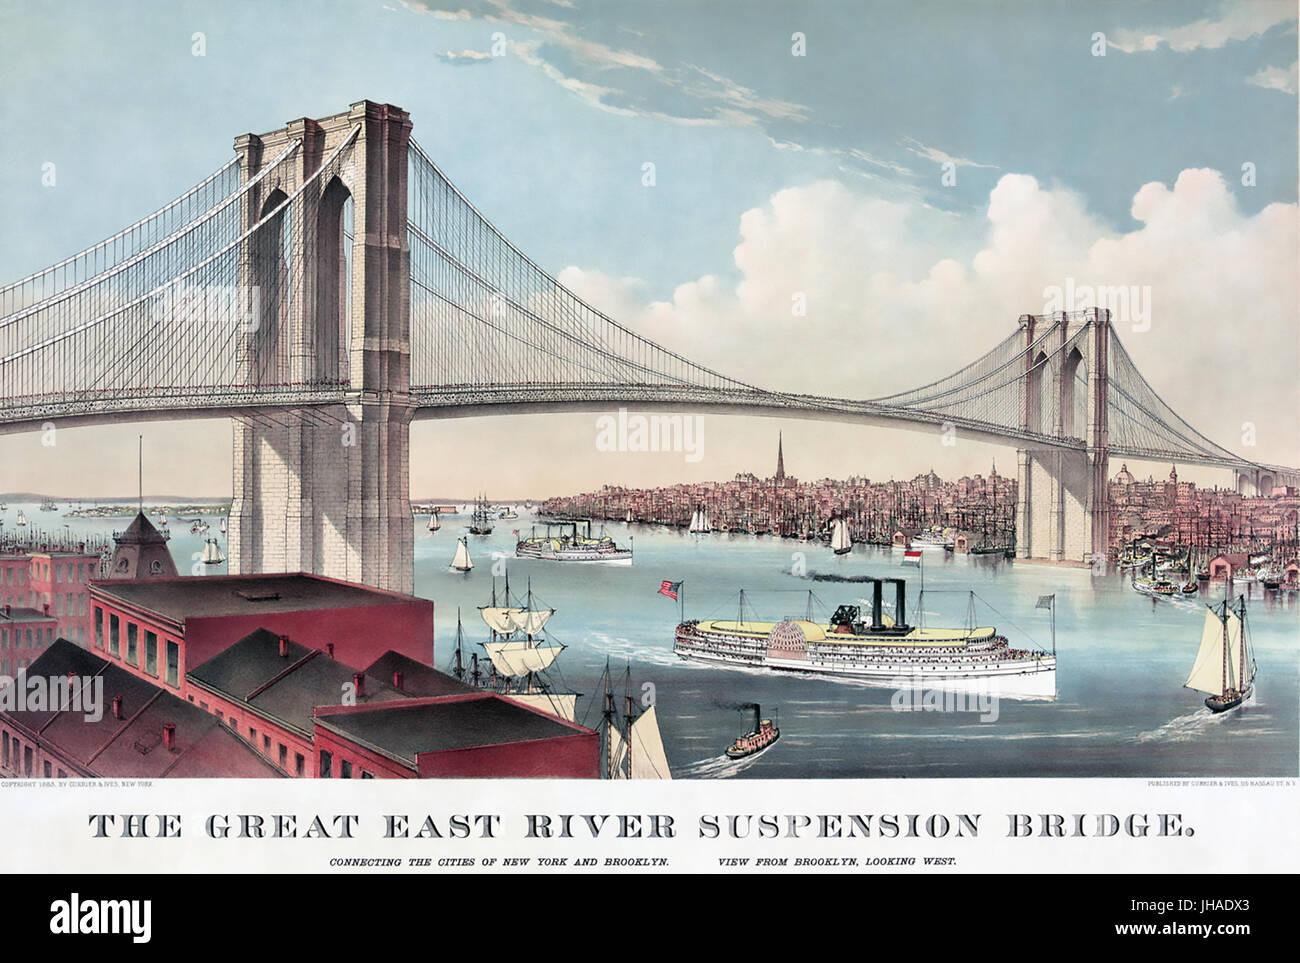 BROOKLYN BRIDGE over the East River in 1883. Print by Currier & Ives - Stock Image